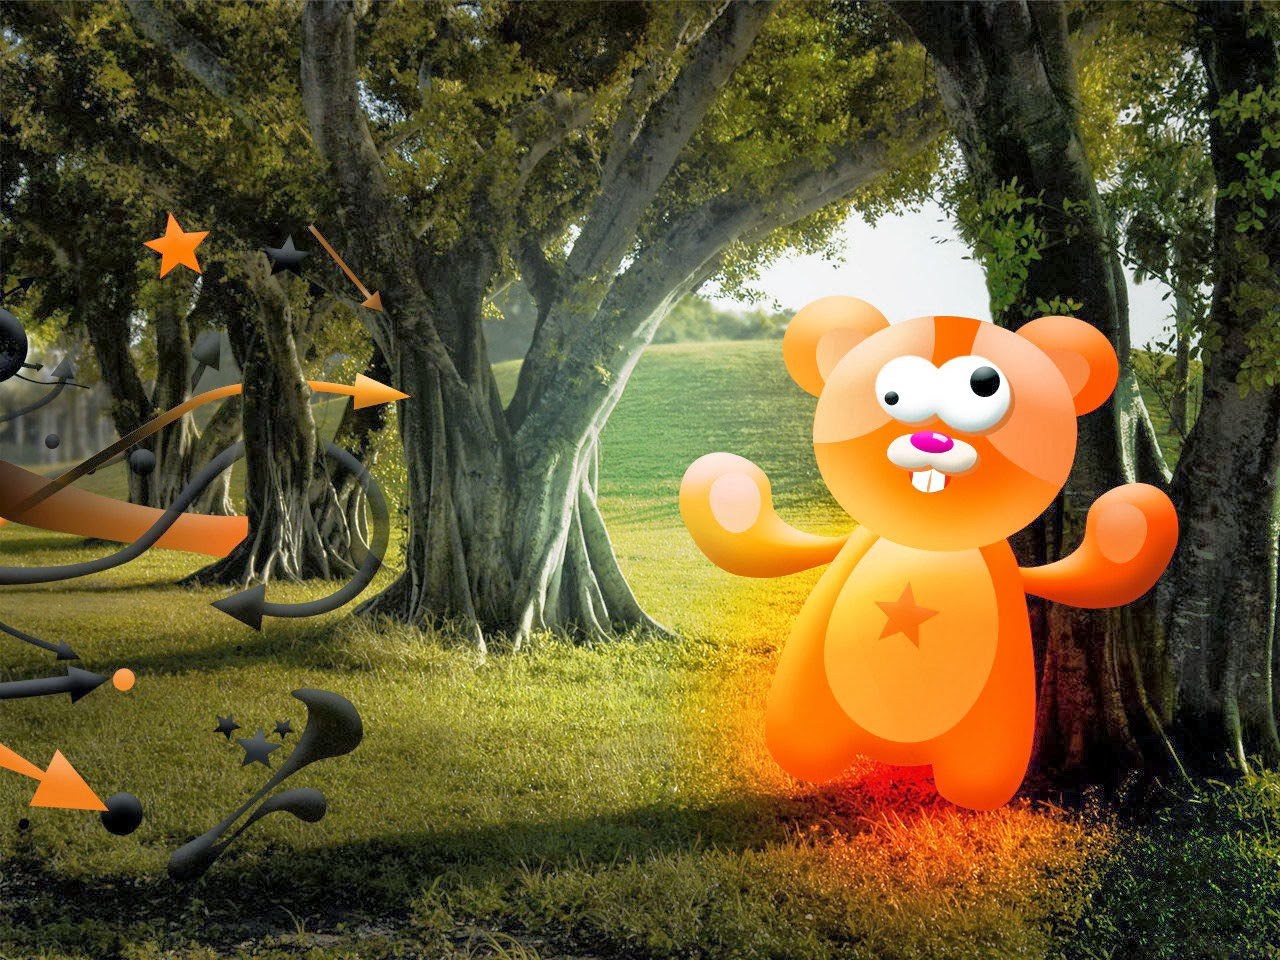 HD-Teddy-Bear-animated-CG-wallppaper-desktop-free-download.jpg